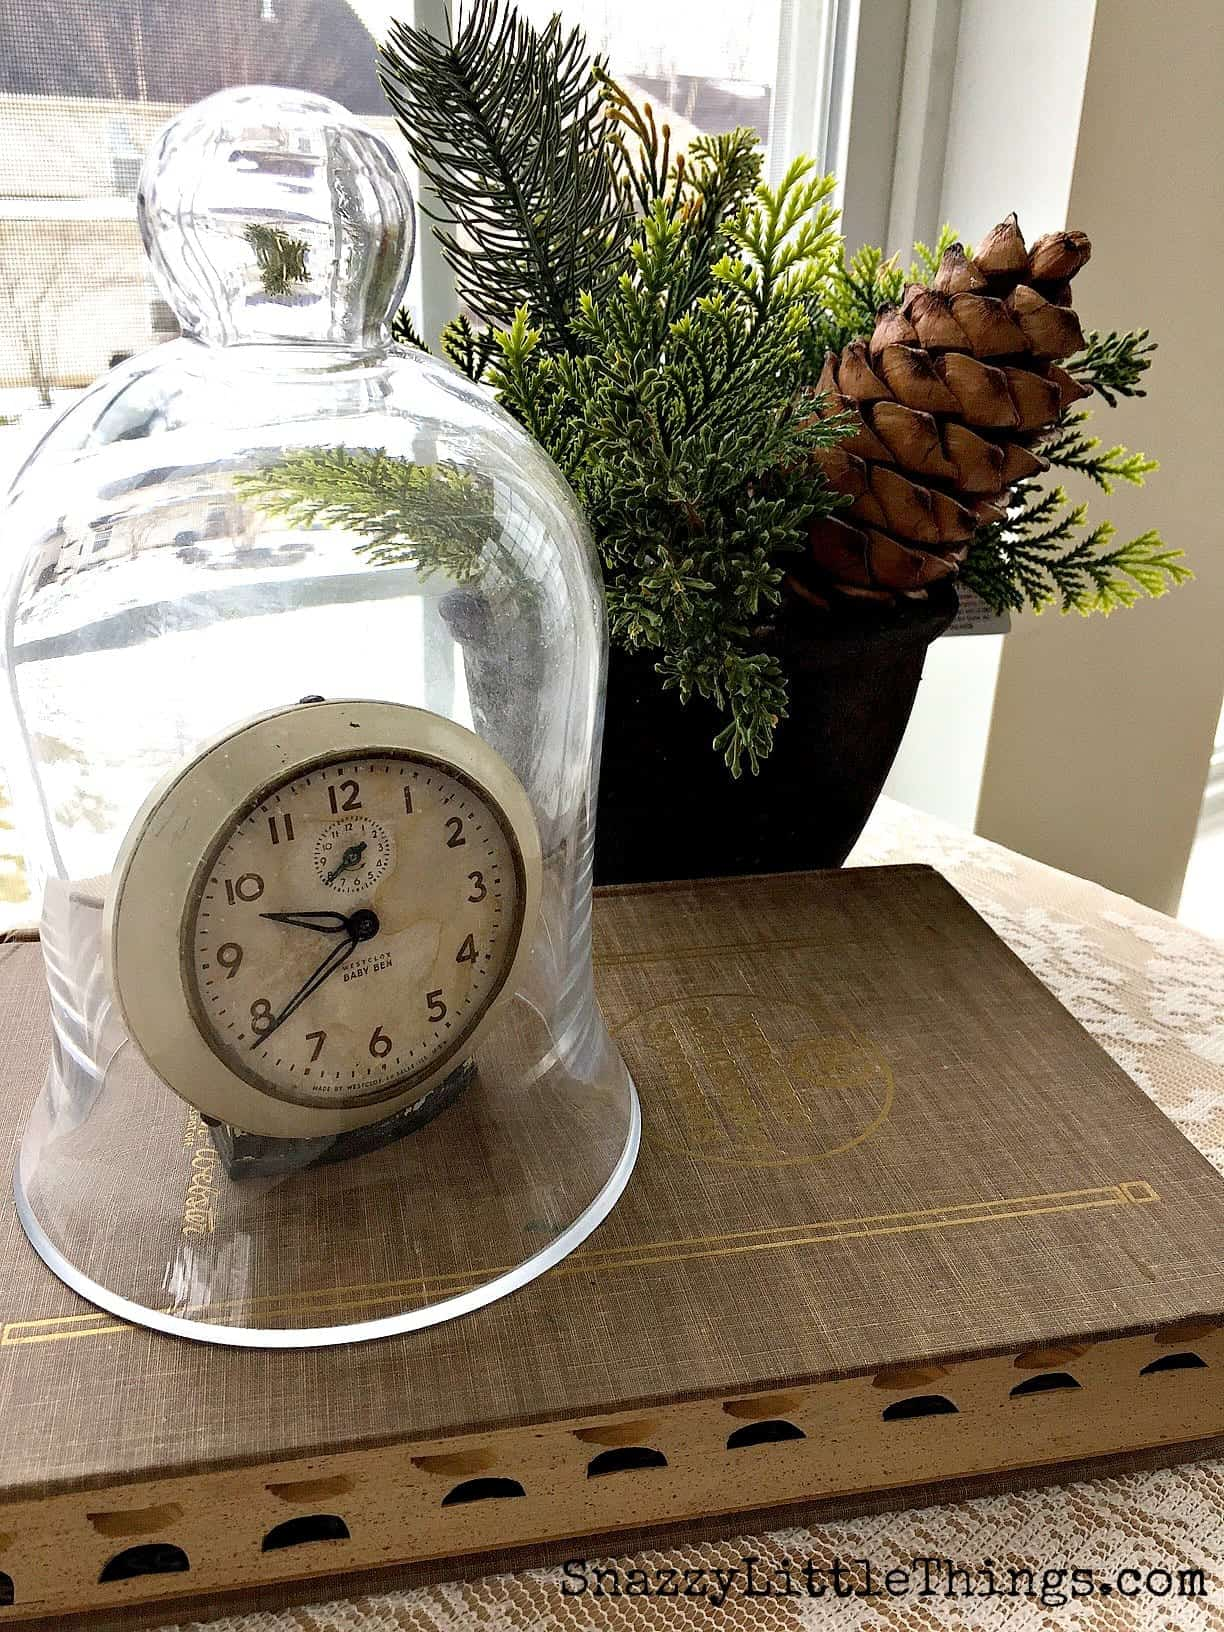 winter decorating ideas Winter Decorating Ideas   Old Clock Under Cloche with Evergreens